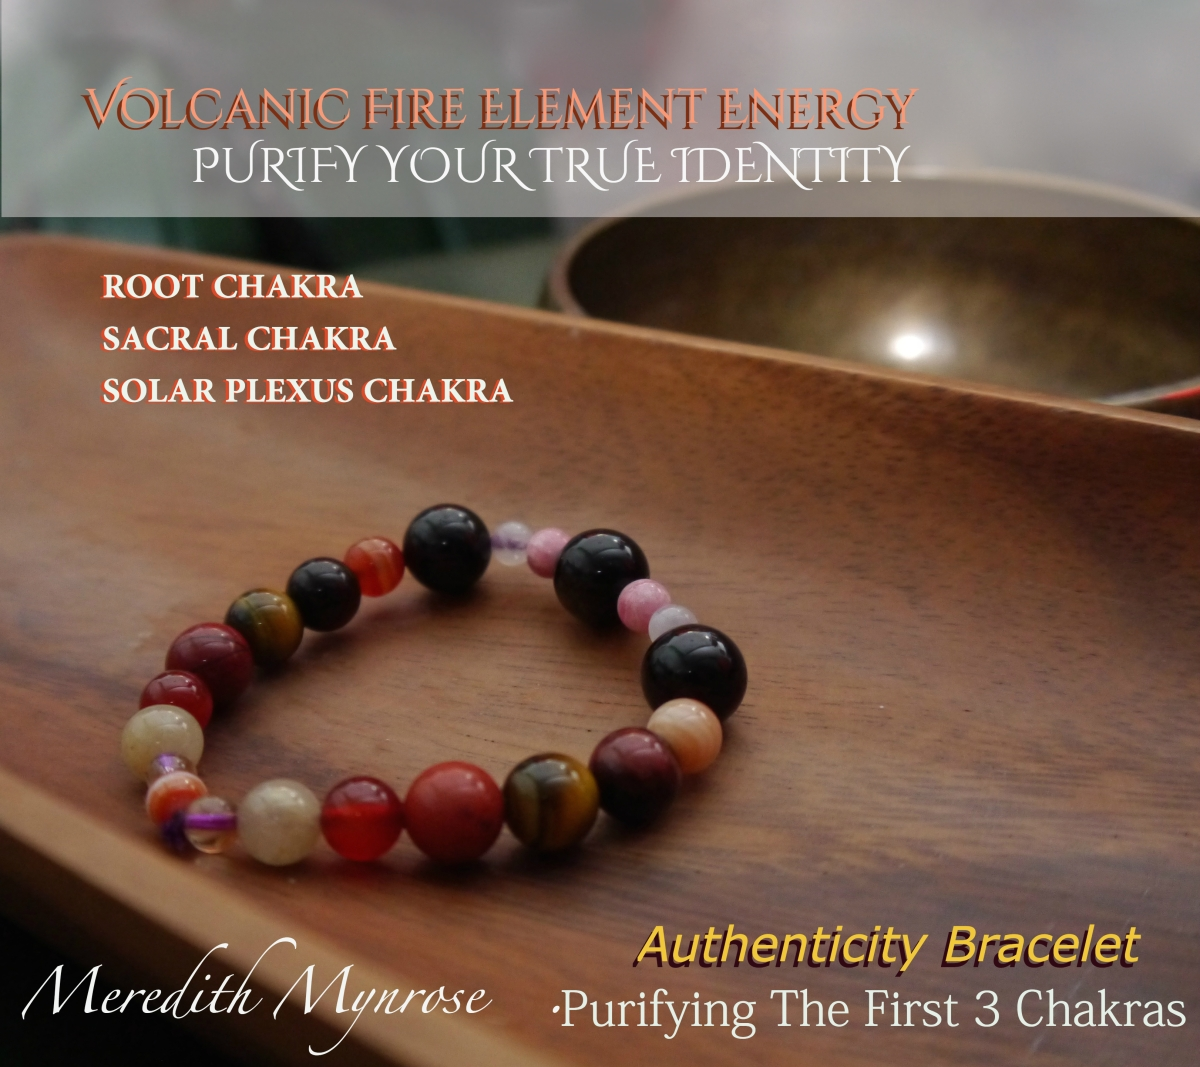 Authenticity Bracelet : Goddess Pele with The First 3 Chakras